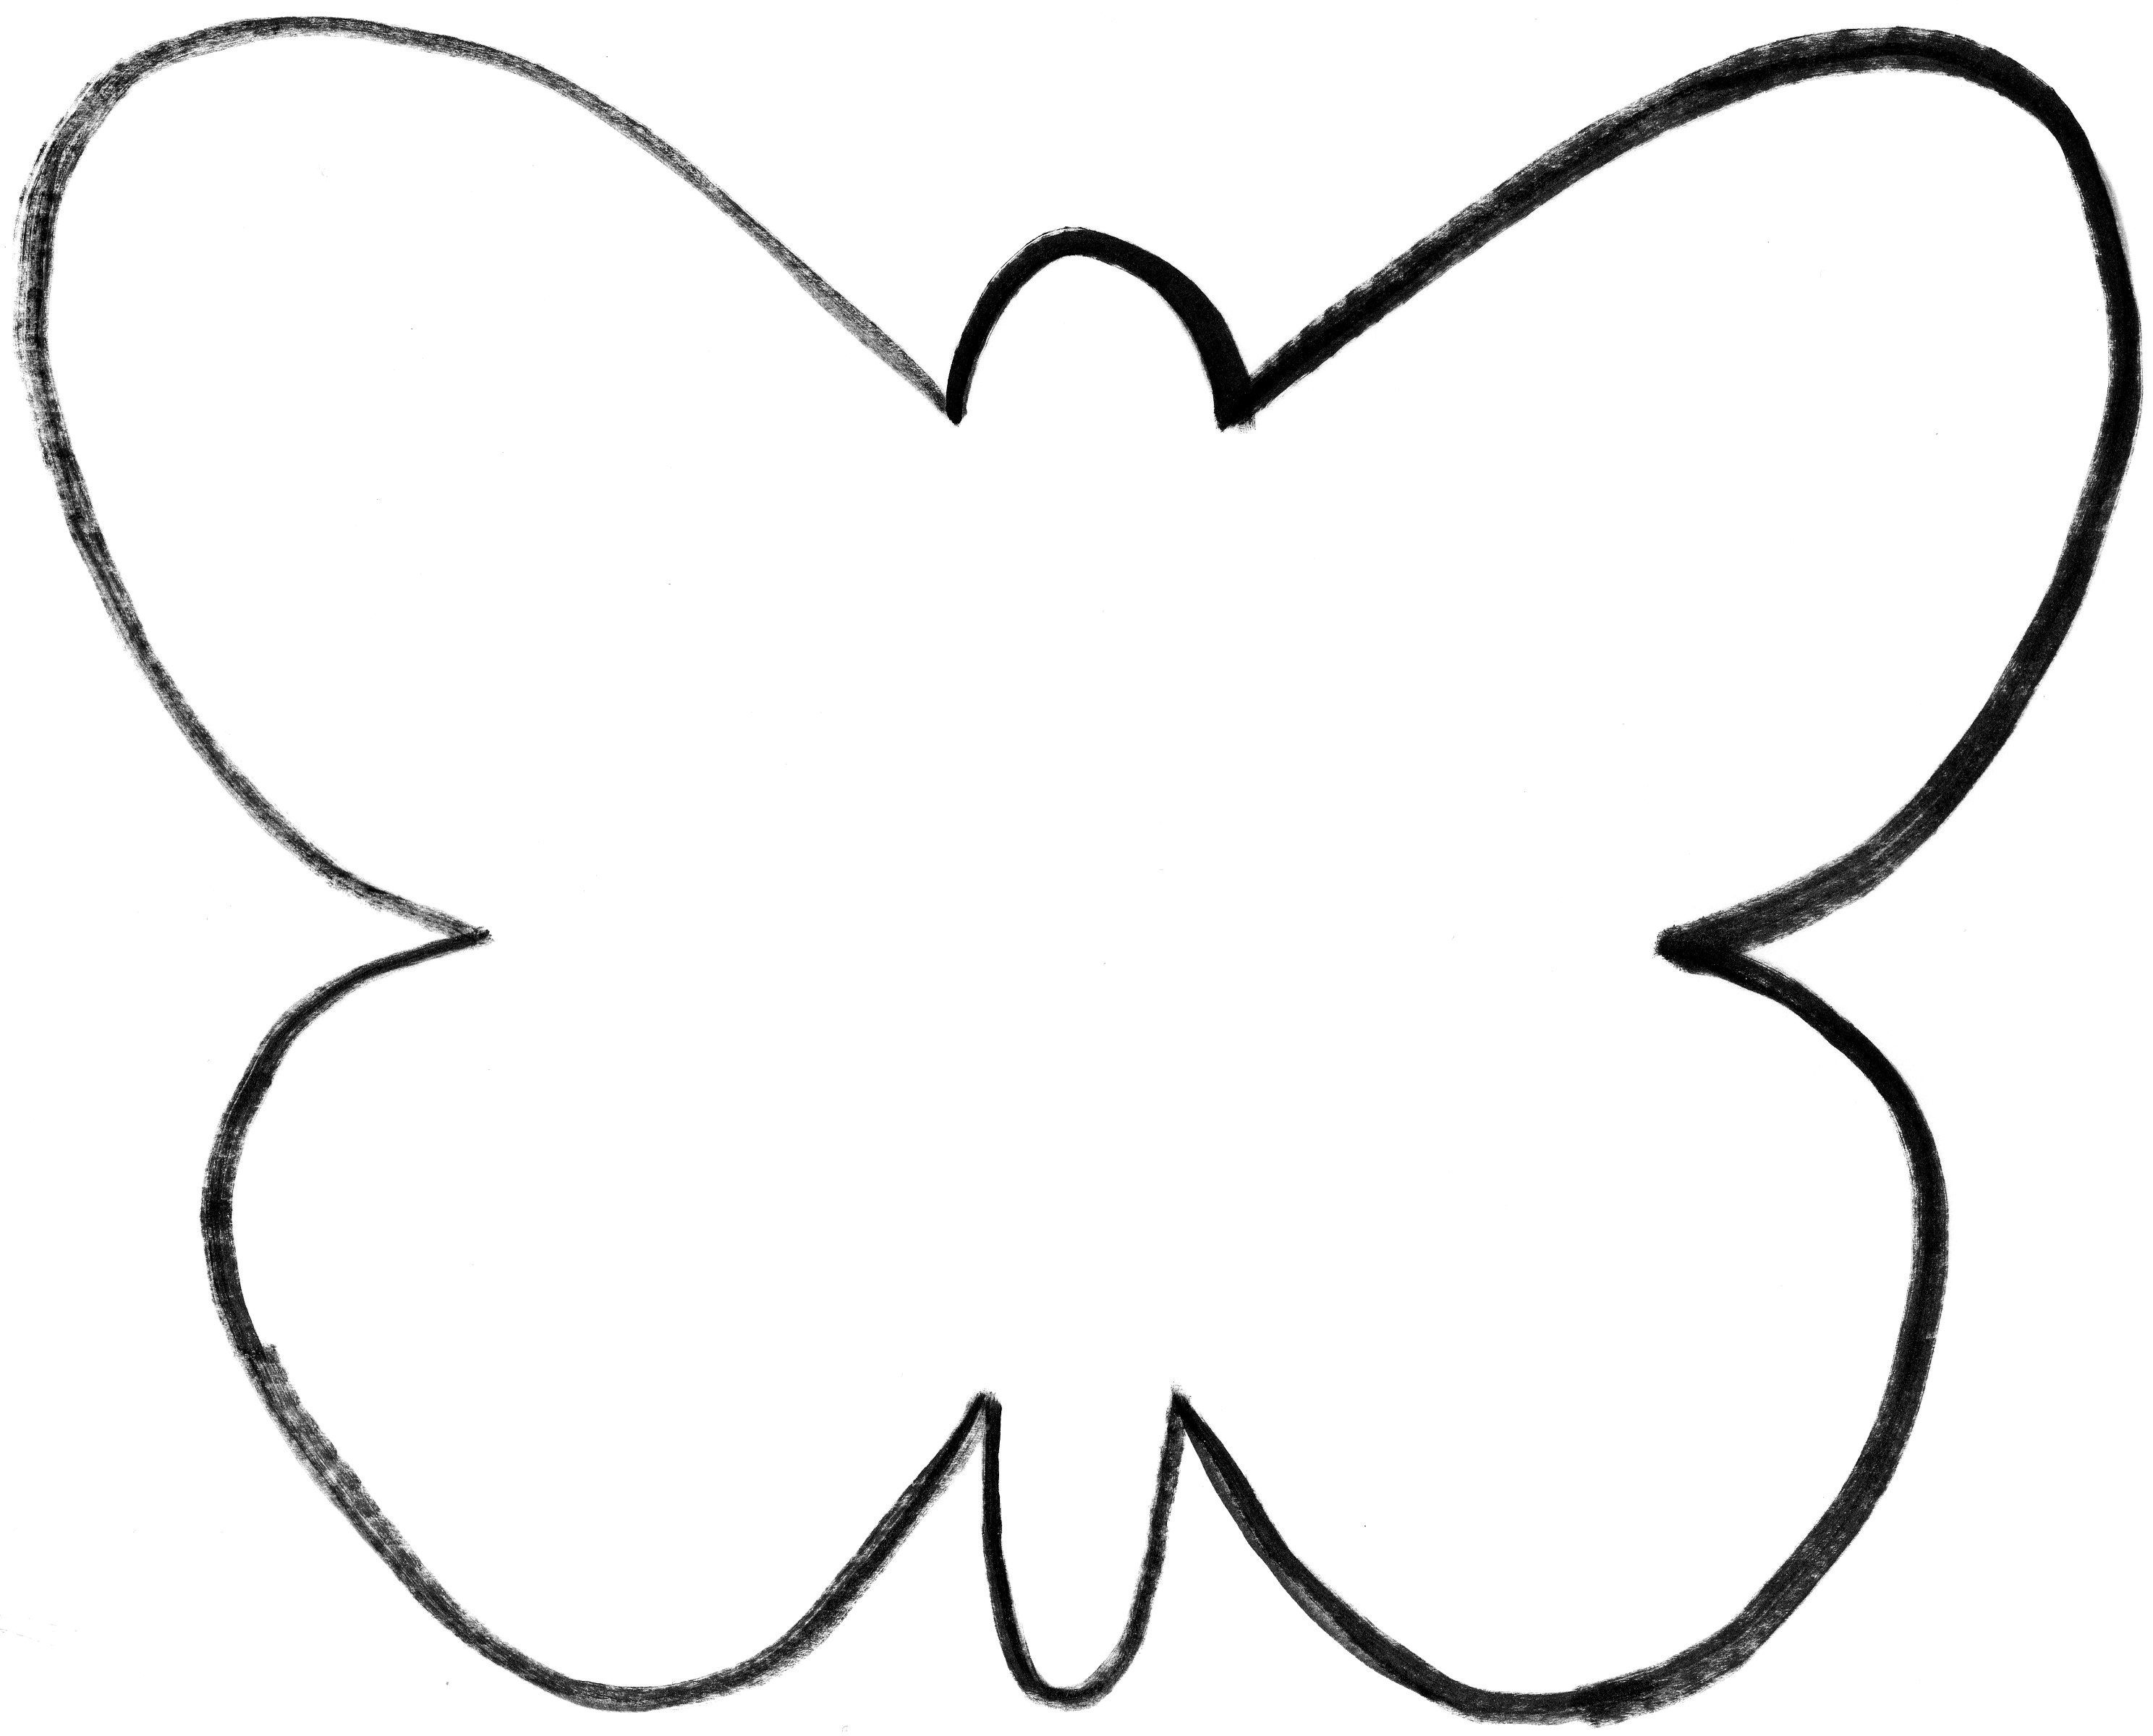 Butterflies Cut Out Template | Preschool Insects & Spiders - Free Printable Butterfly Cutouts